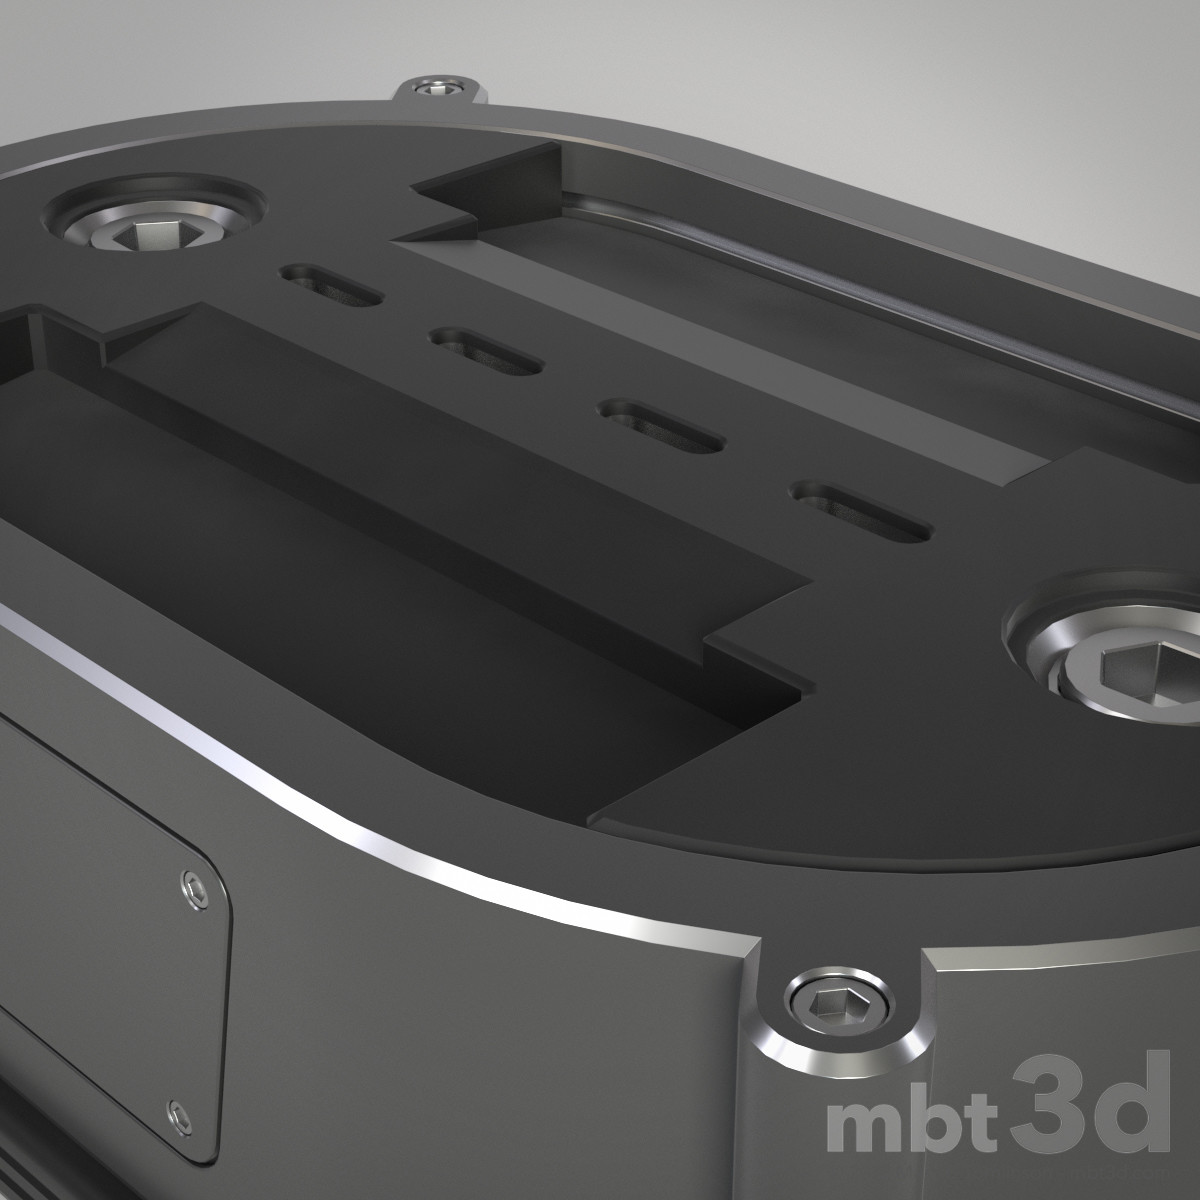 Box XIII: Hard surface Boolean MODO exercise